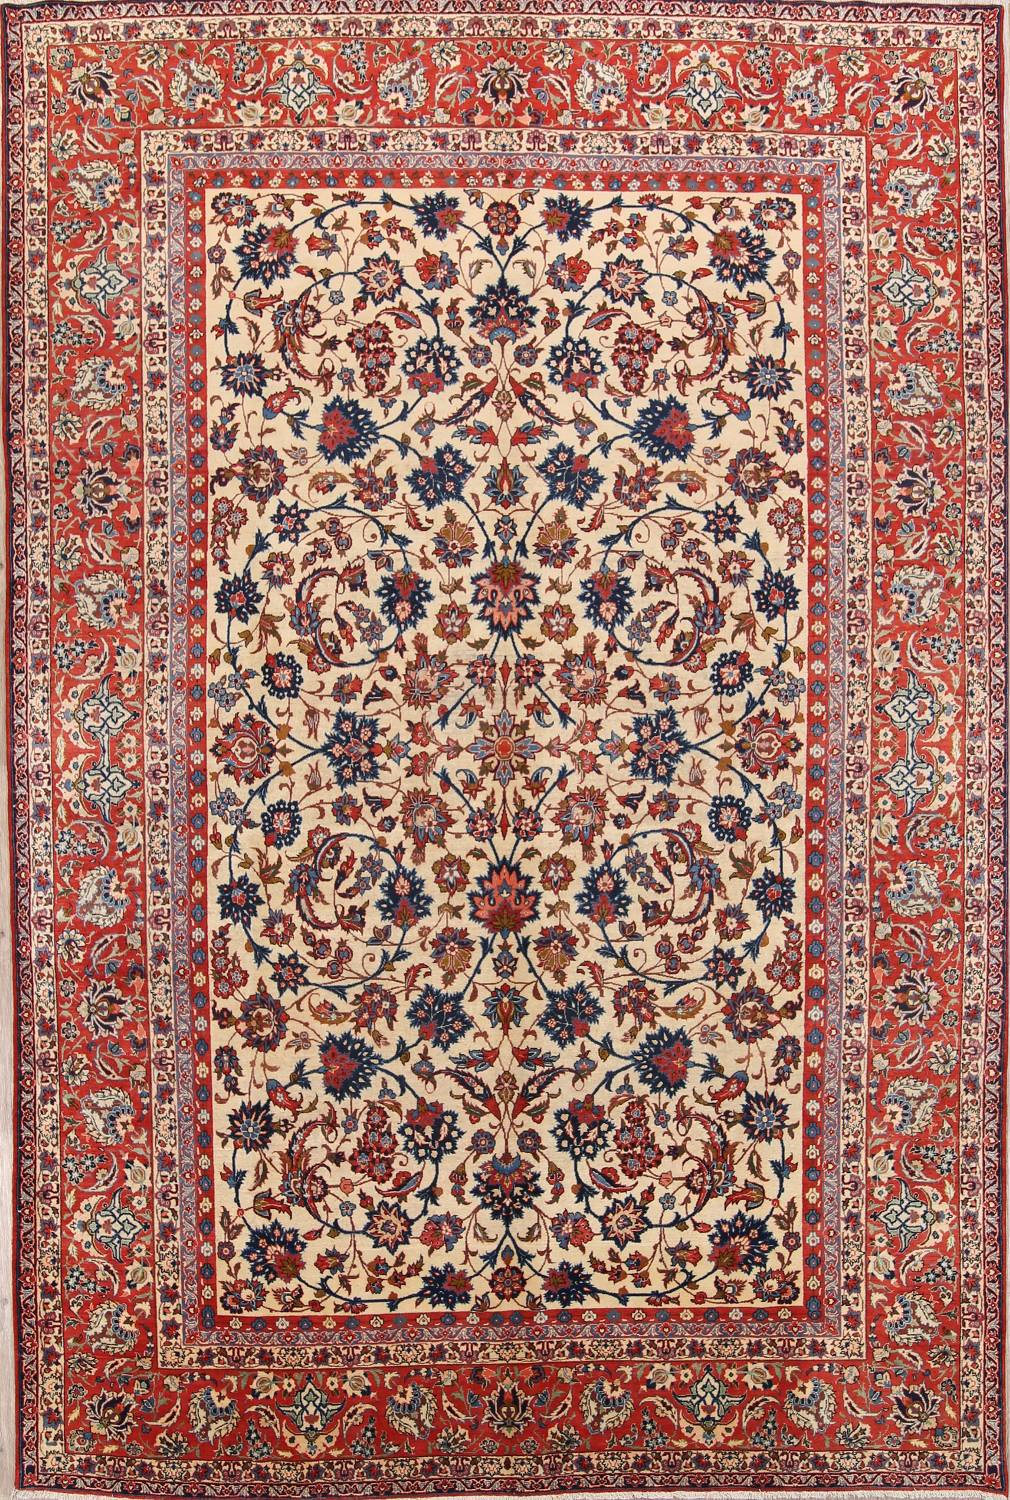 Floral 9x13 Isfahan Persian Area Rug image 1